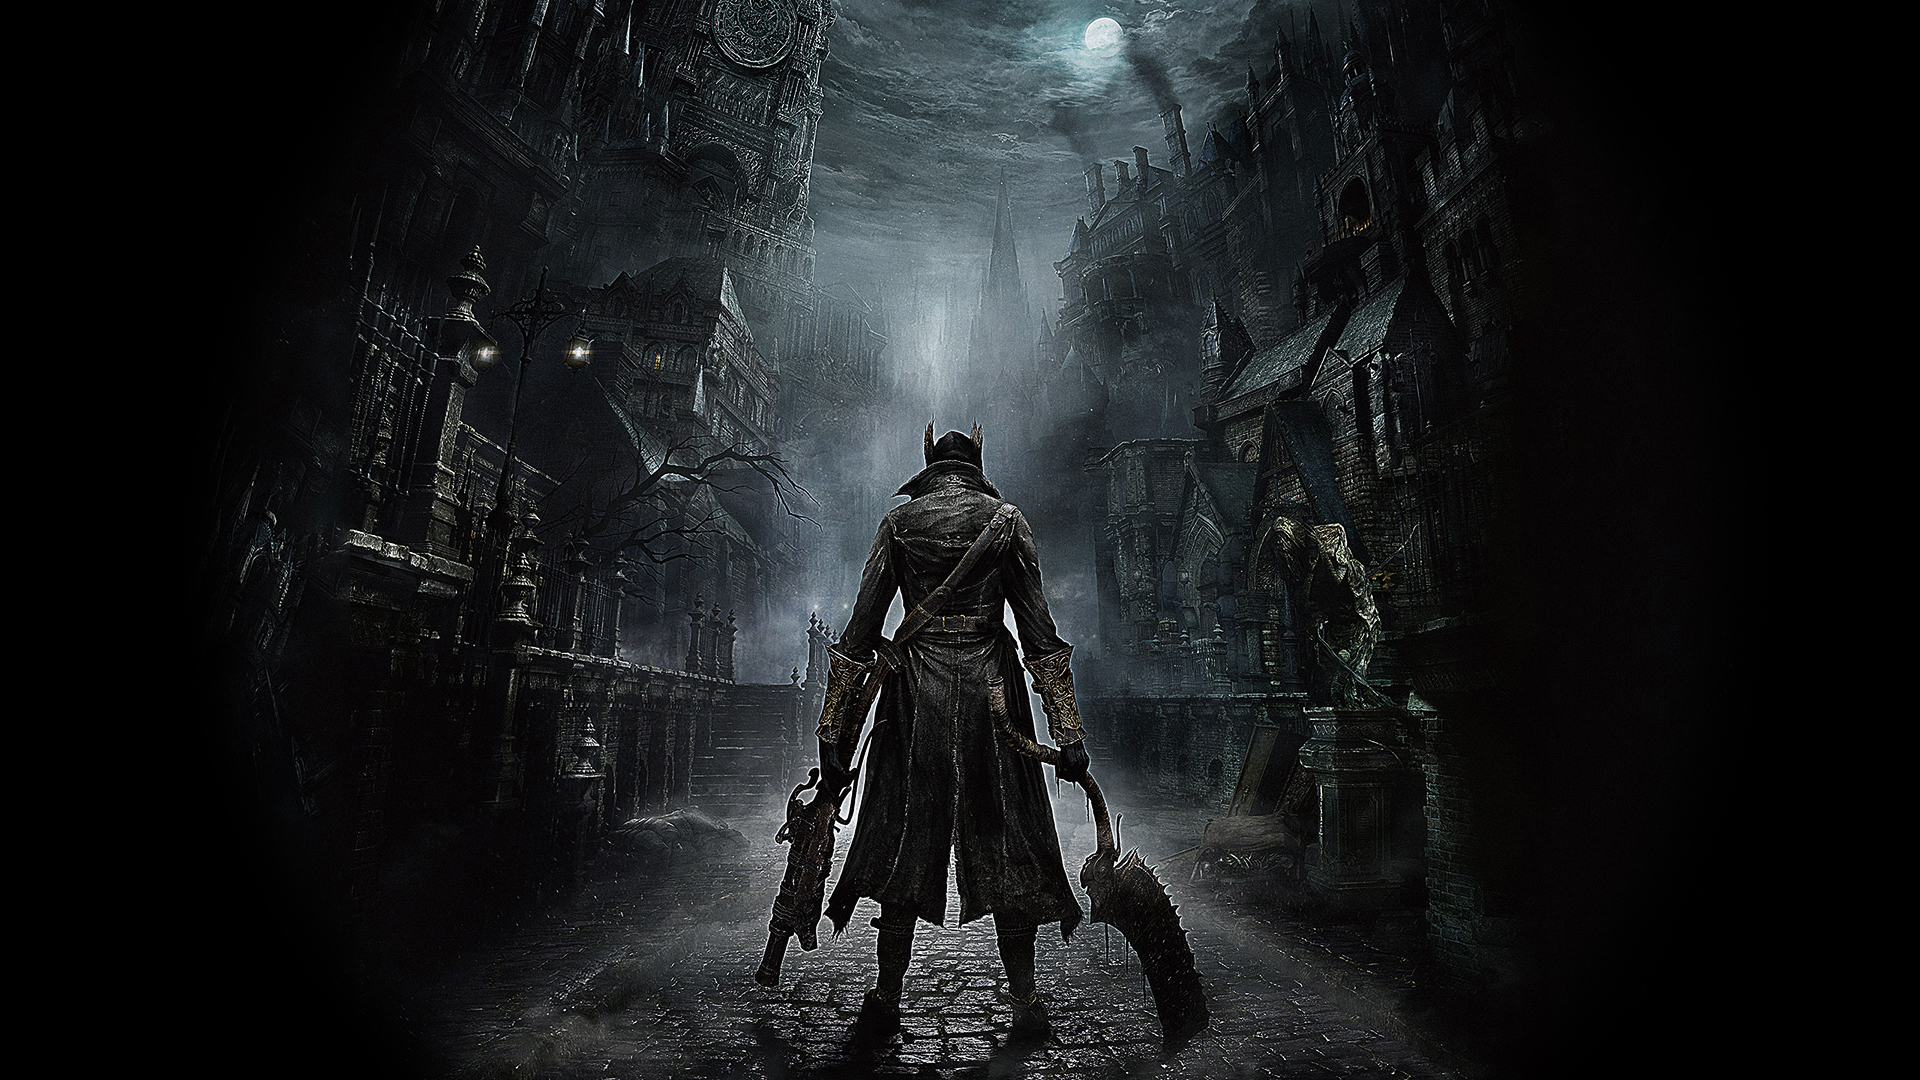 bloodborne full hd wallpaper and background image 1920x1080 id 516663. Black Bedroom Furniture Sets. Home Design Ideas